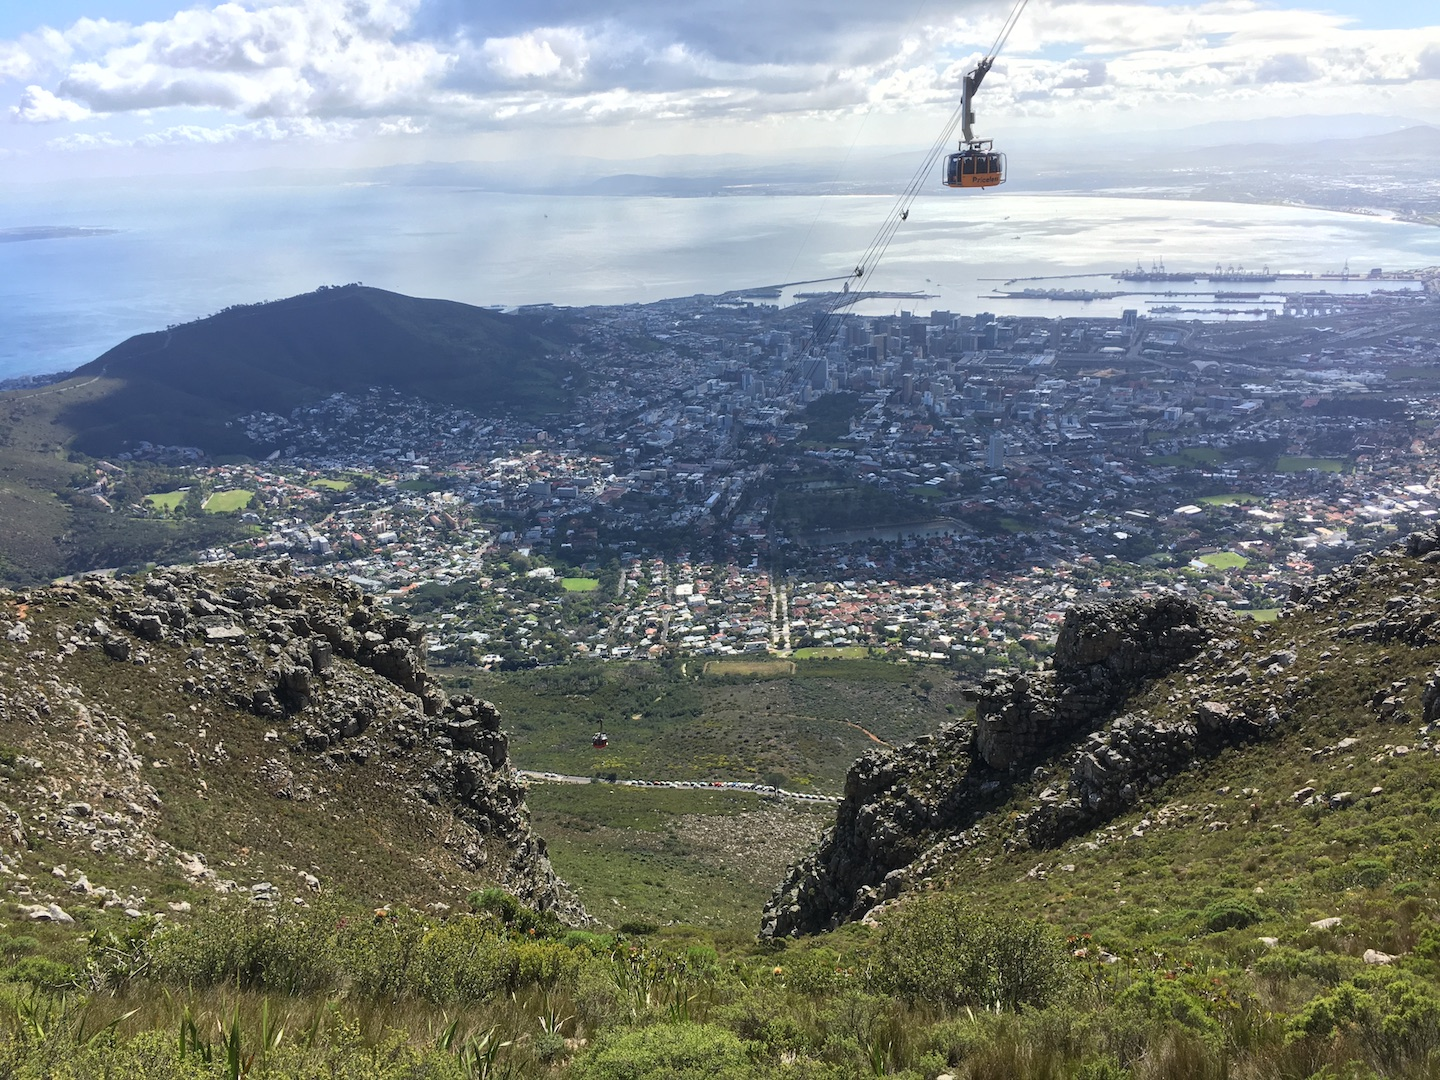 Choosing a Table Mountain hike